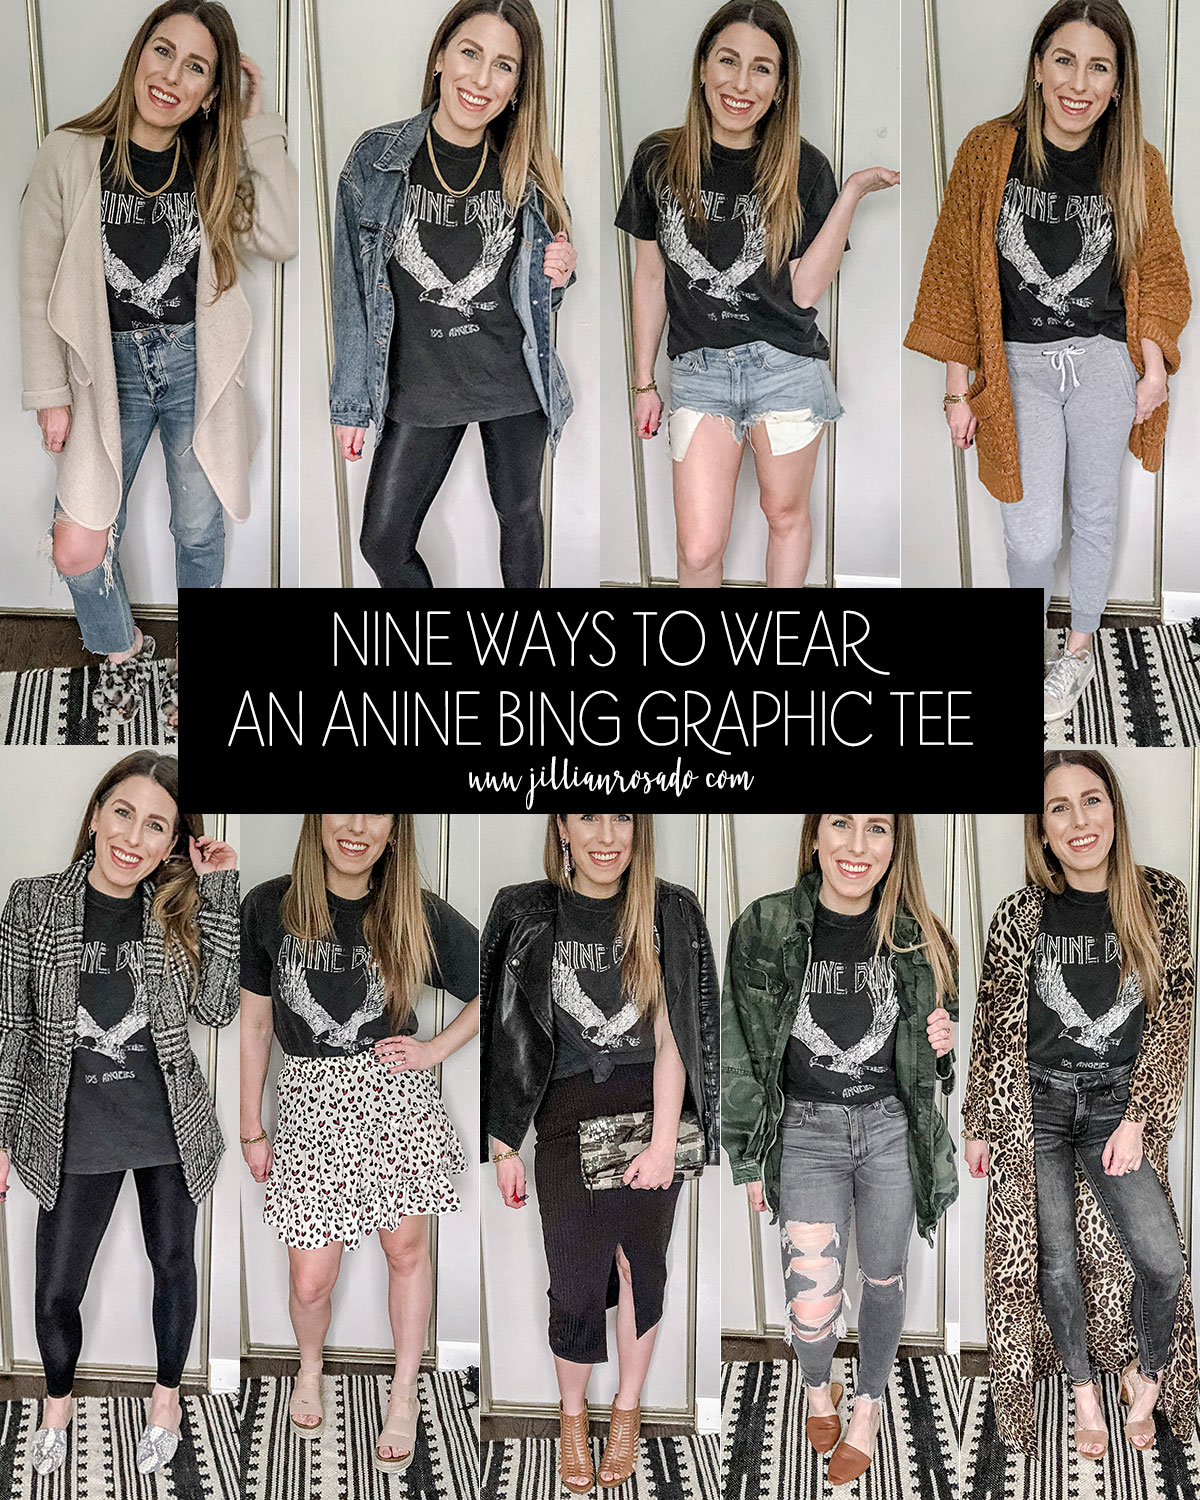 How To Style The Anine Bing Eagle Graphic Tee